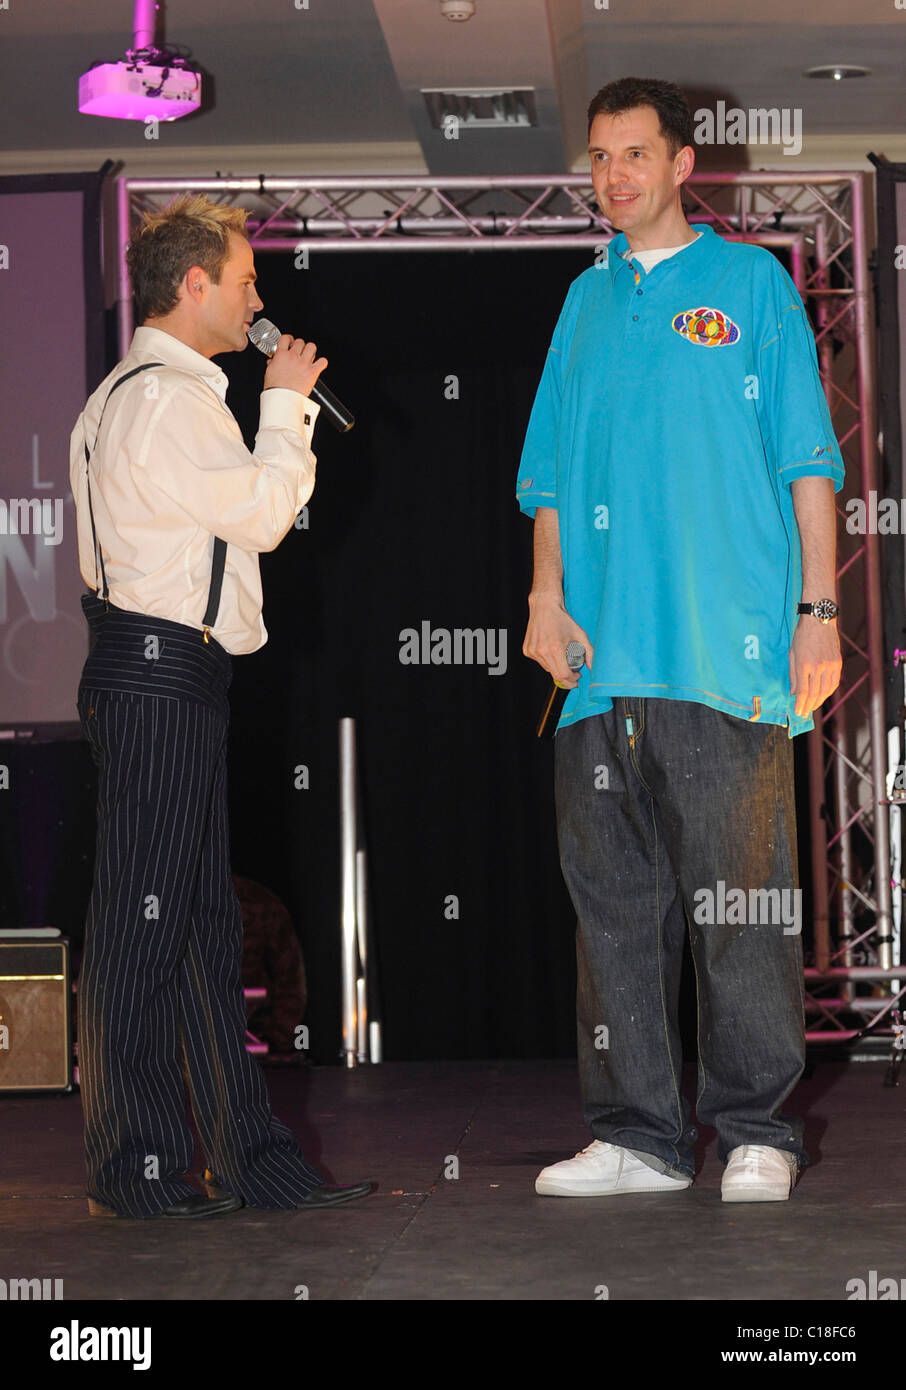 julian bennett and tim westwood liverpool fashion week at the adelphi hotel day 3 liverpool england 110309 lukemills